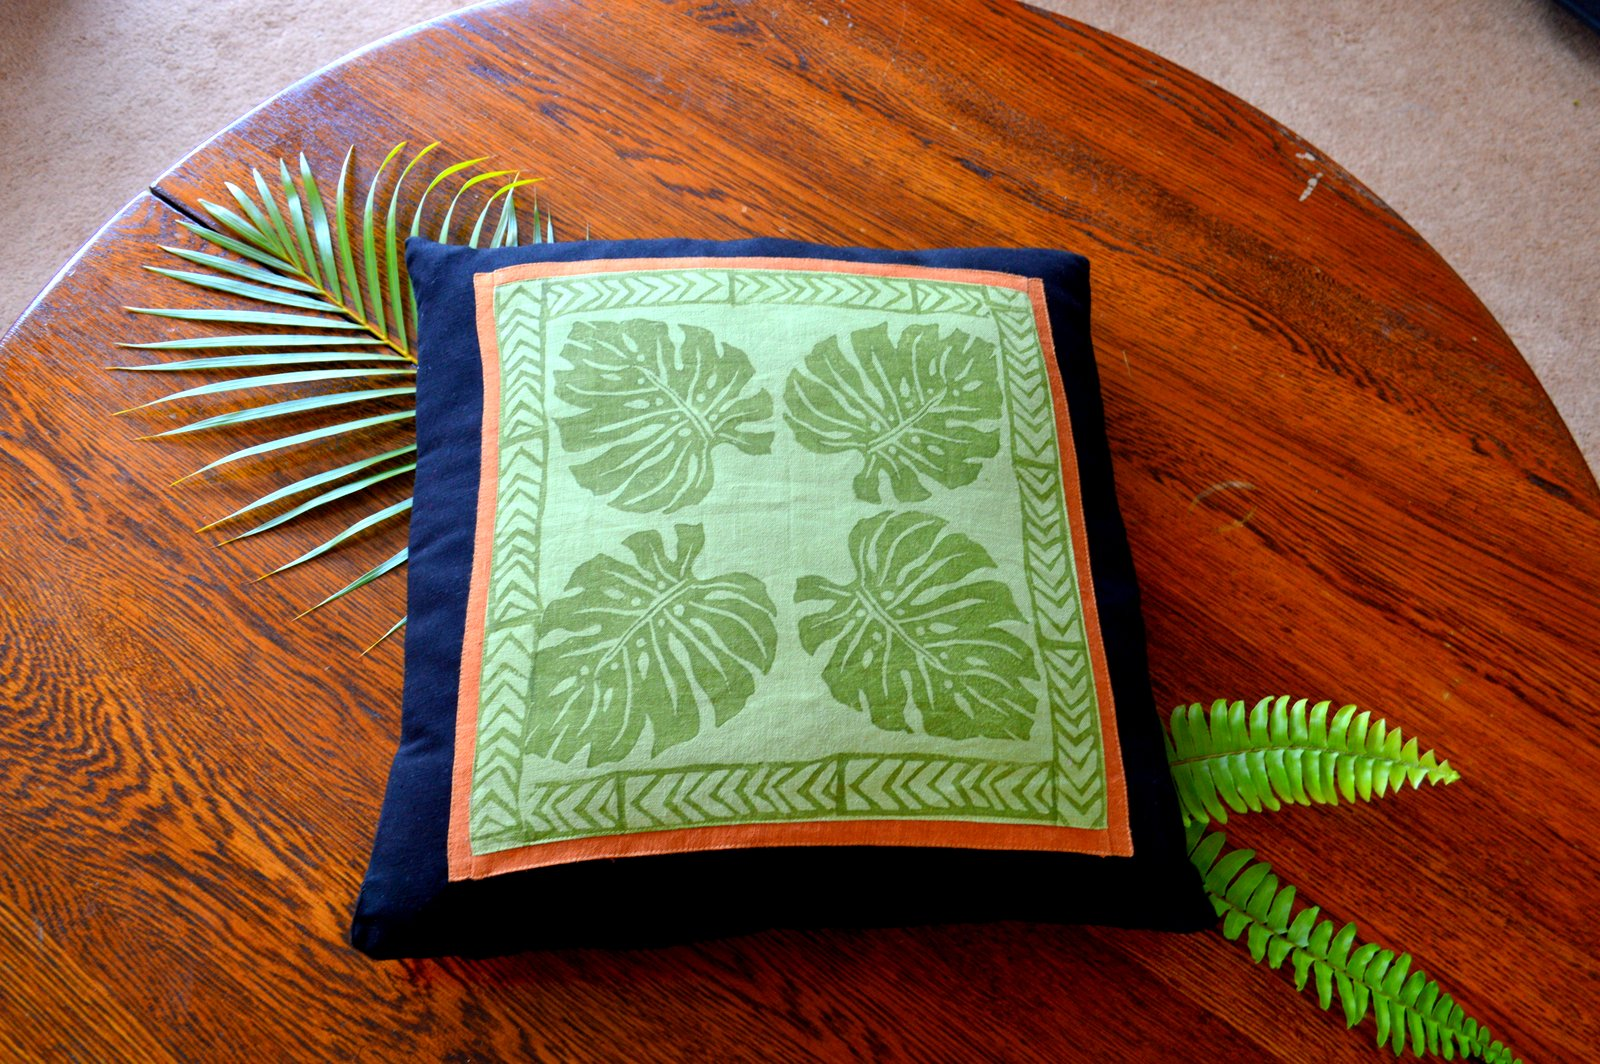 Lesley, Hand printed monsteria leaf  linen cushion cover from hand carved wooden stamps .